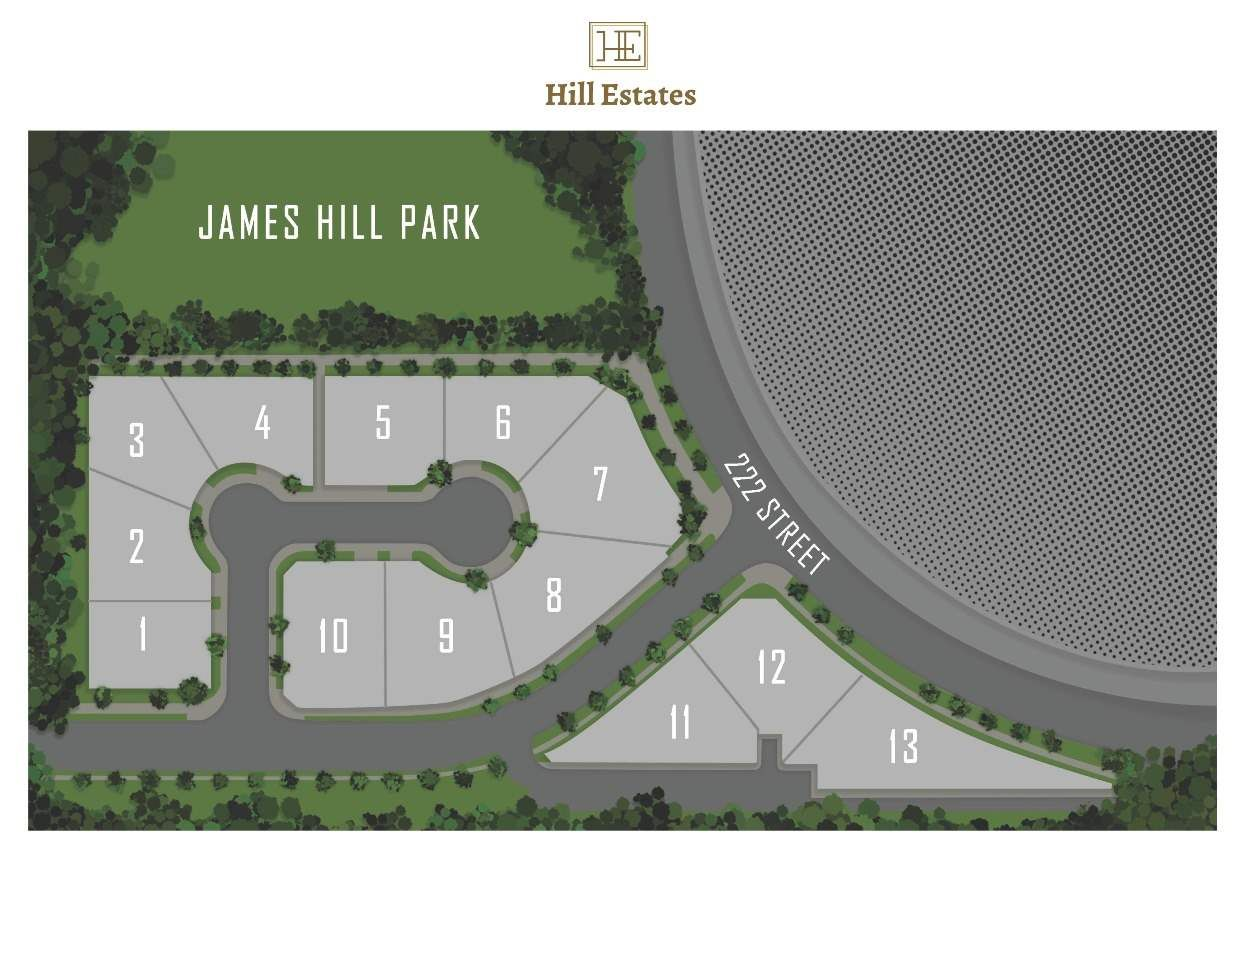 """Main Photo: Lot 6 4467 222 Street in Langley: Murrayville Land for sale in """"Hill Estates"""" : MLS®# R2553800"""